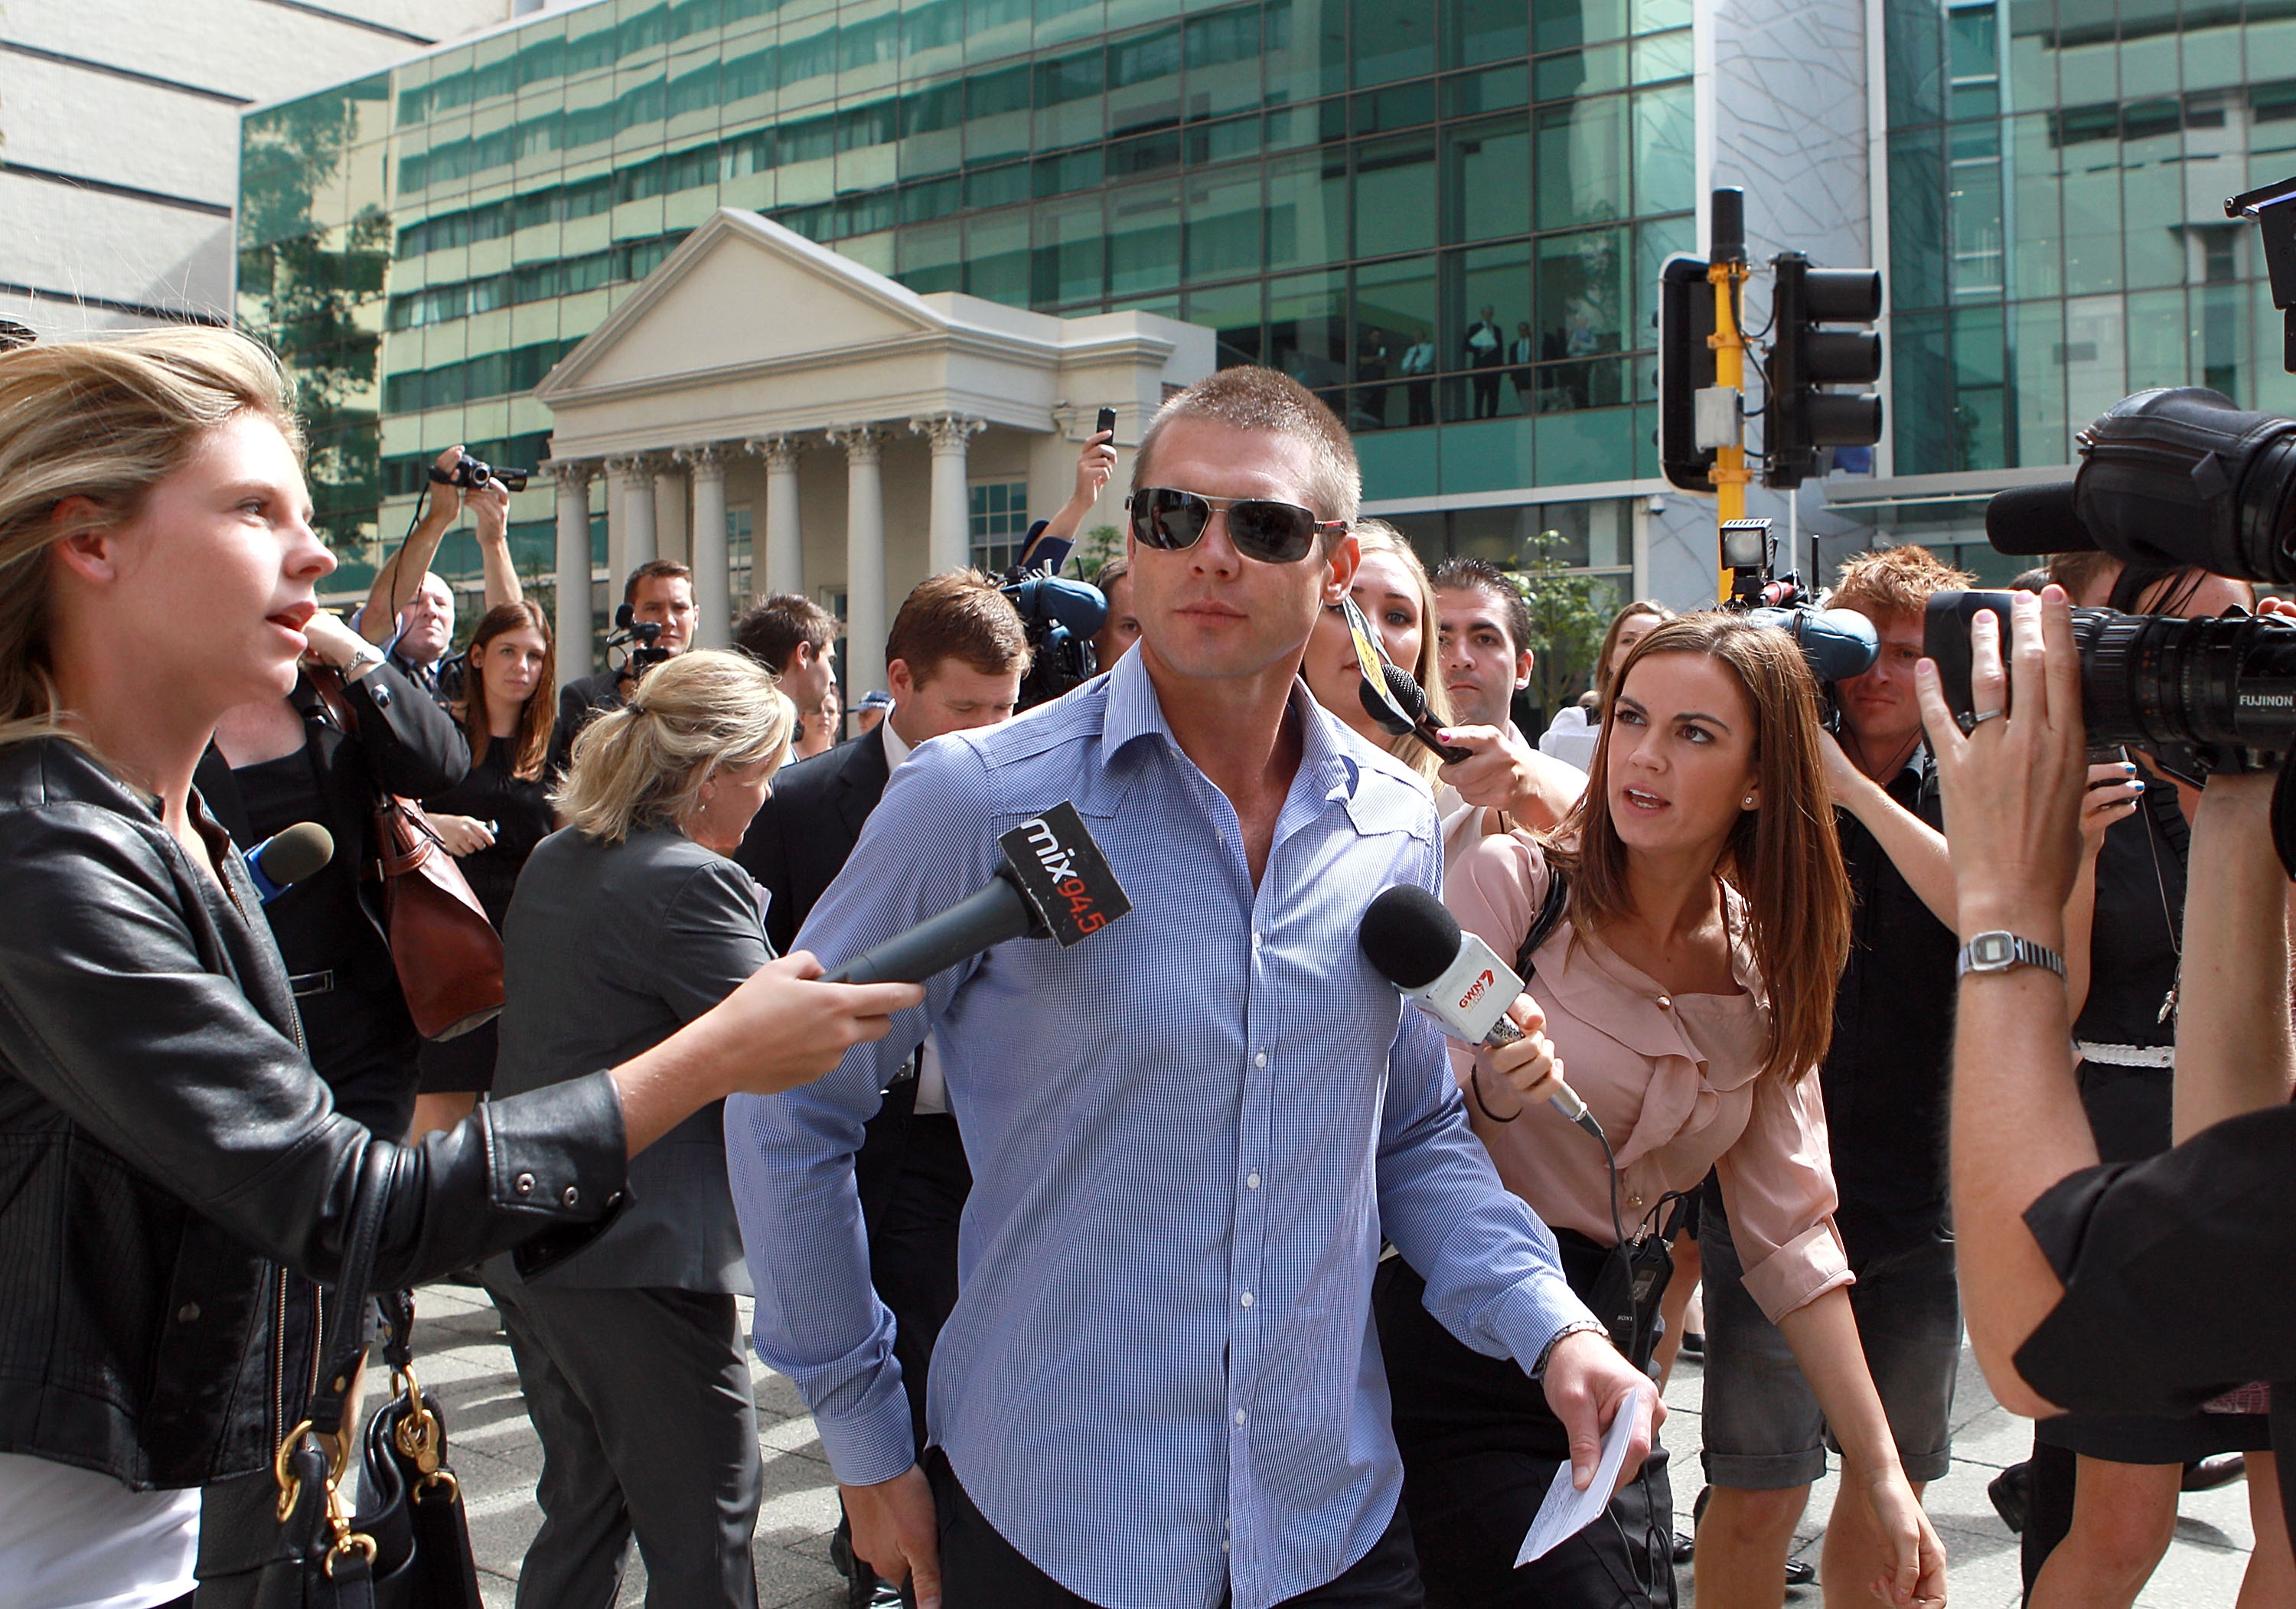 Ben Cousins has become a cautionary tale.